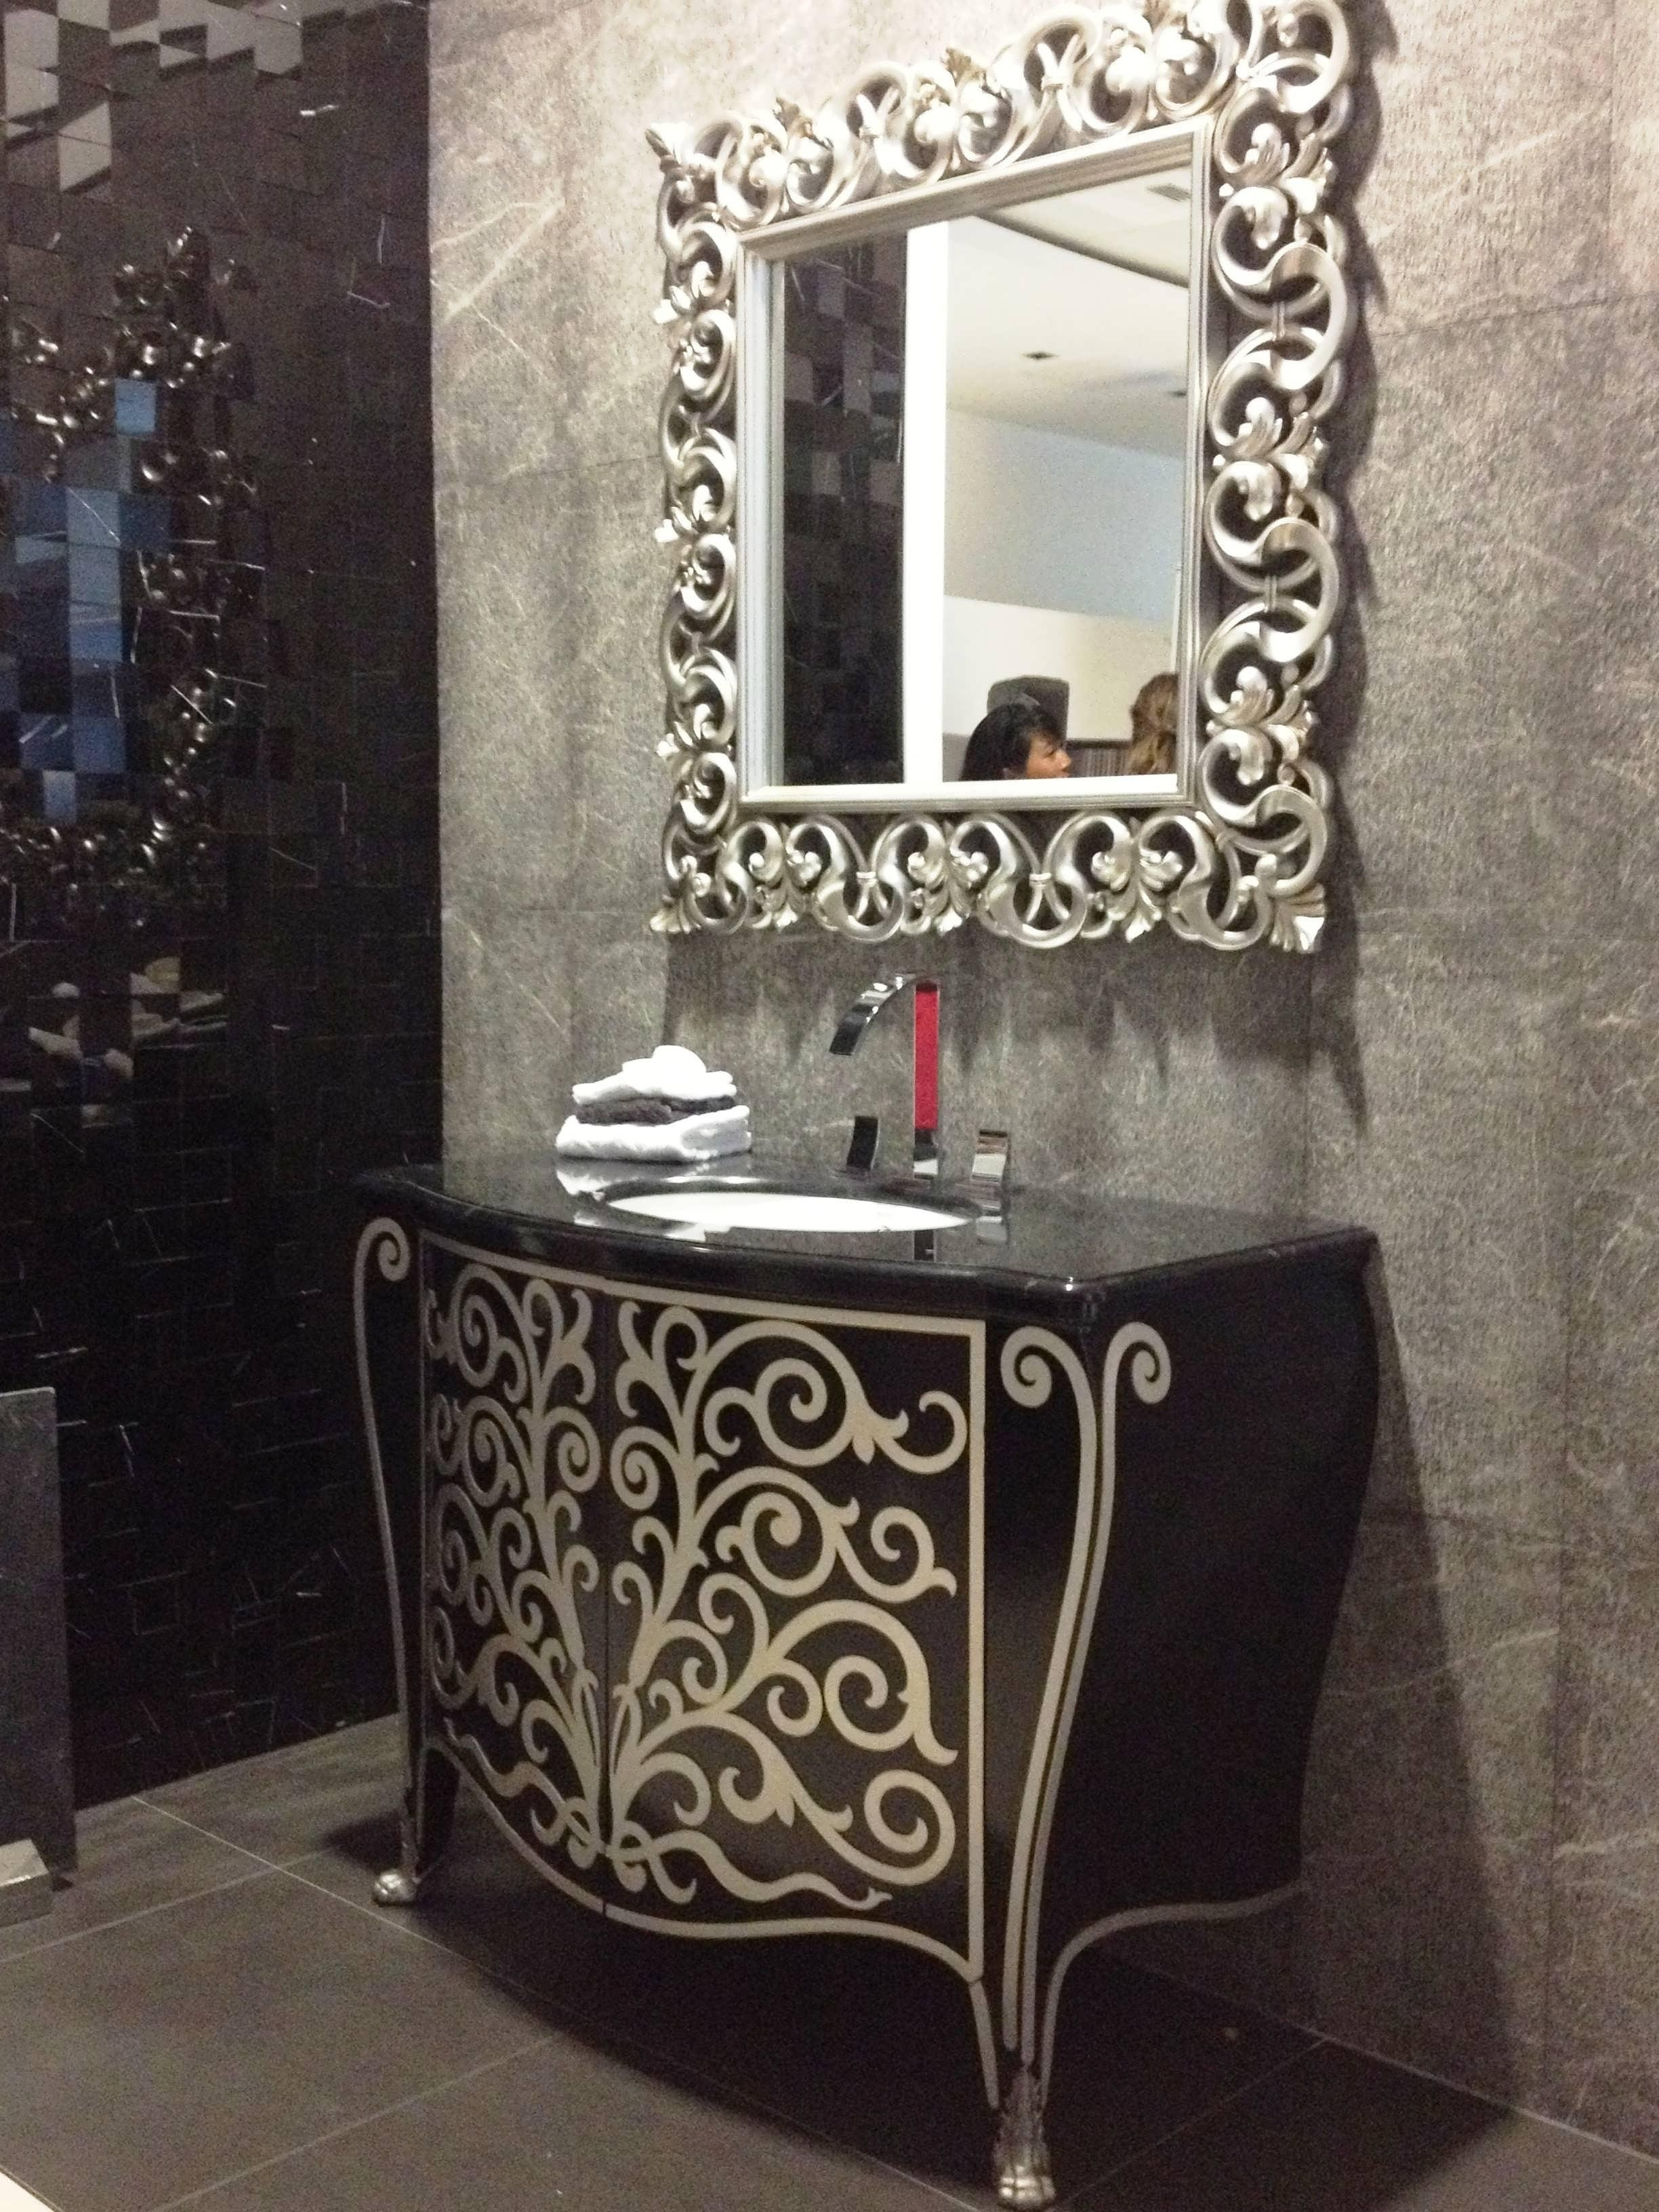 Bathroom : Oval Vanity Mirror Small Round Bathroom Mirrors Ornate Within Ornate Bathroom Mirror (Image 8 of 20)